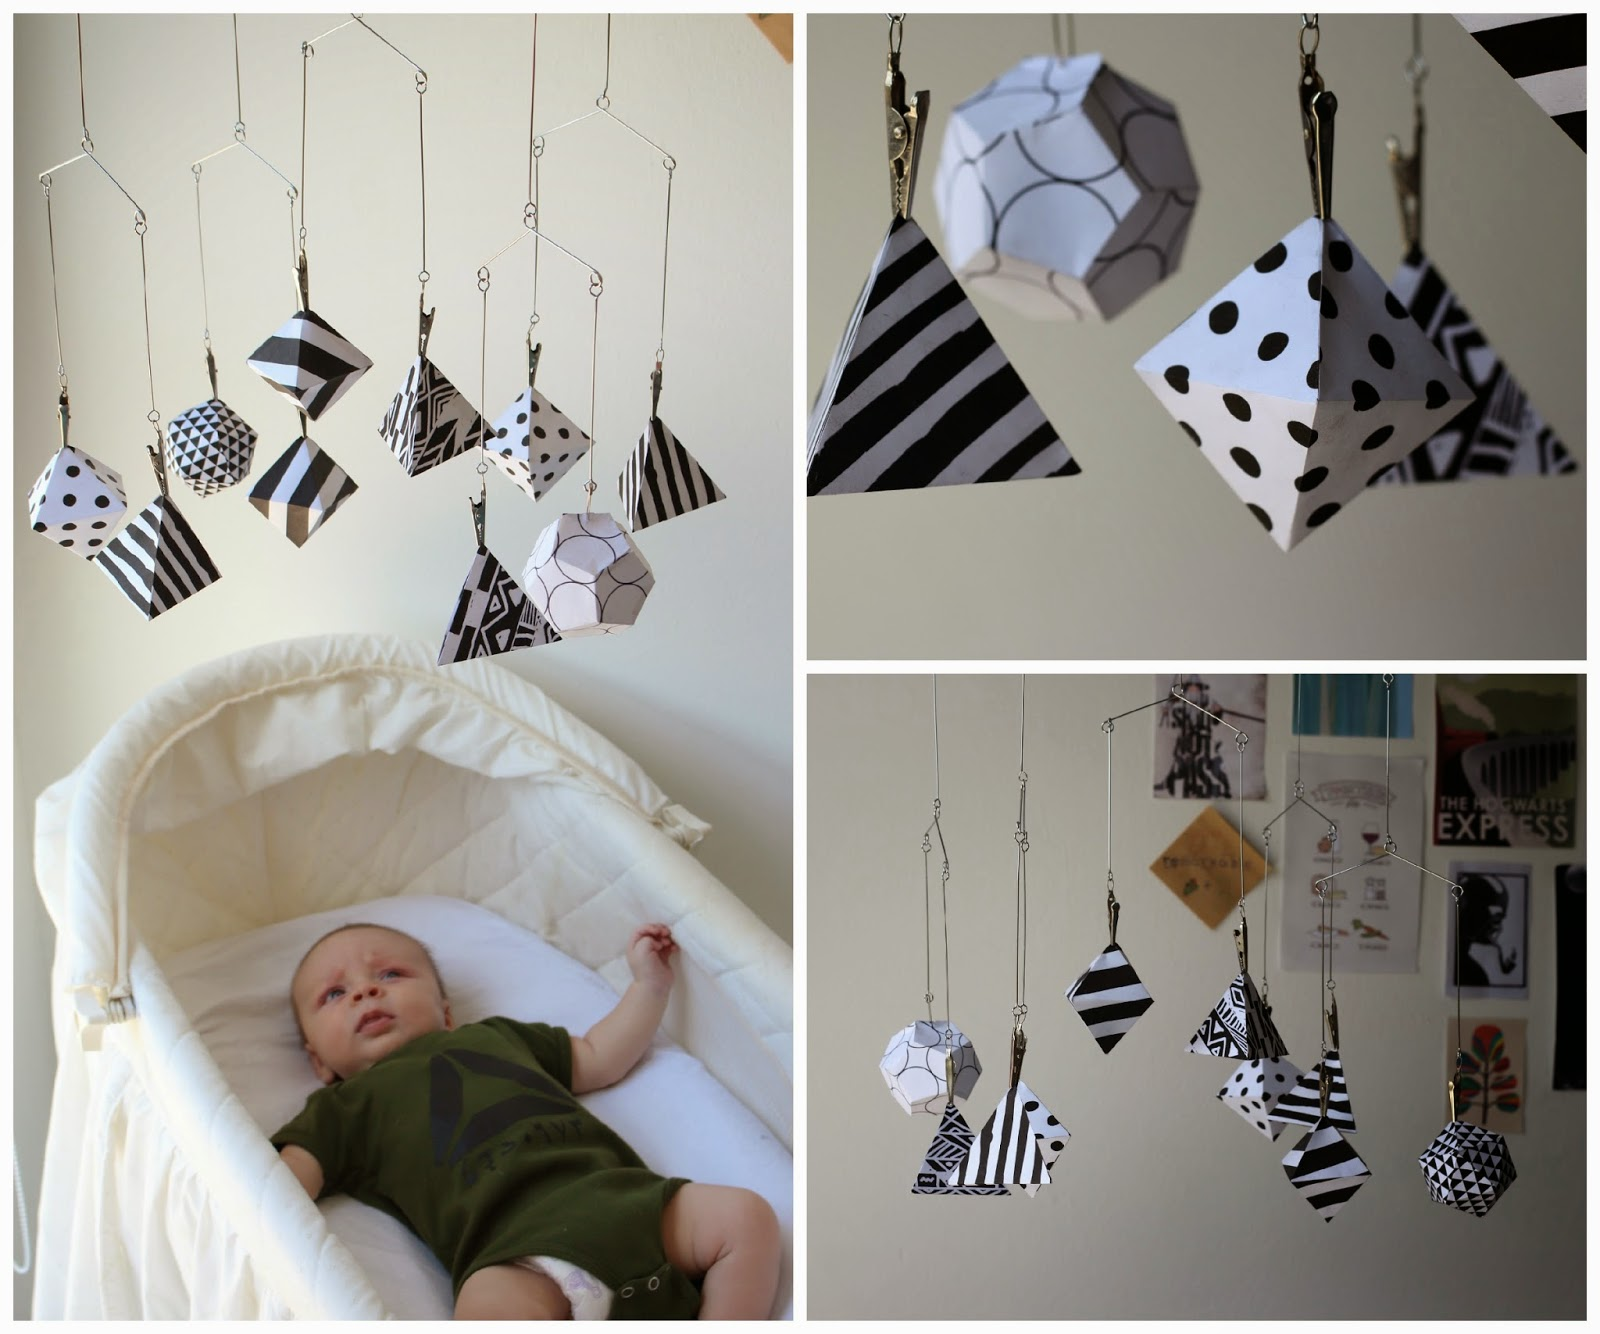 big brother and voila i had an easy affordable modern pleasing appropriate and visually stimulating baby mobile